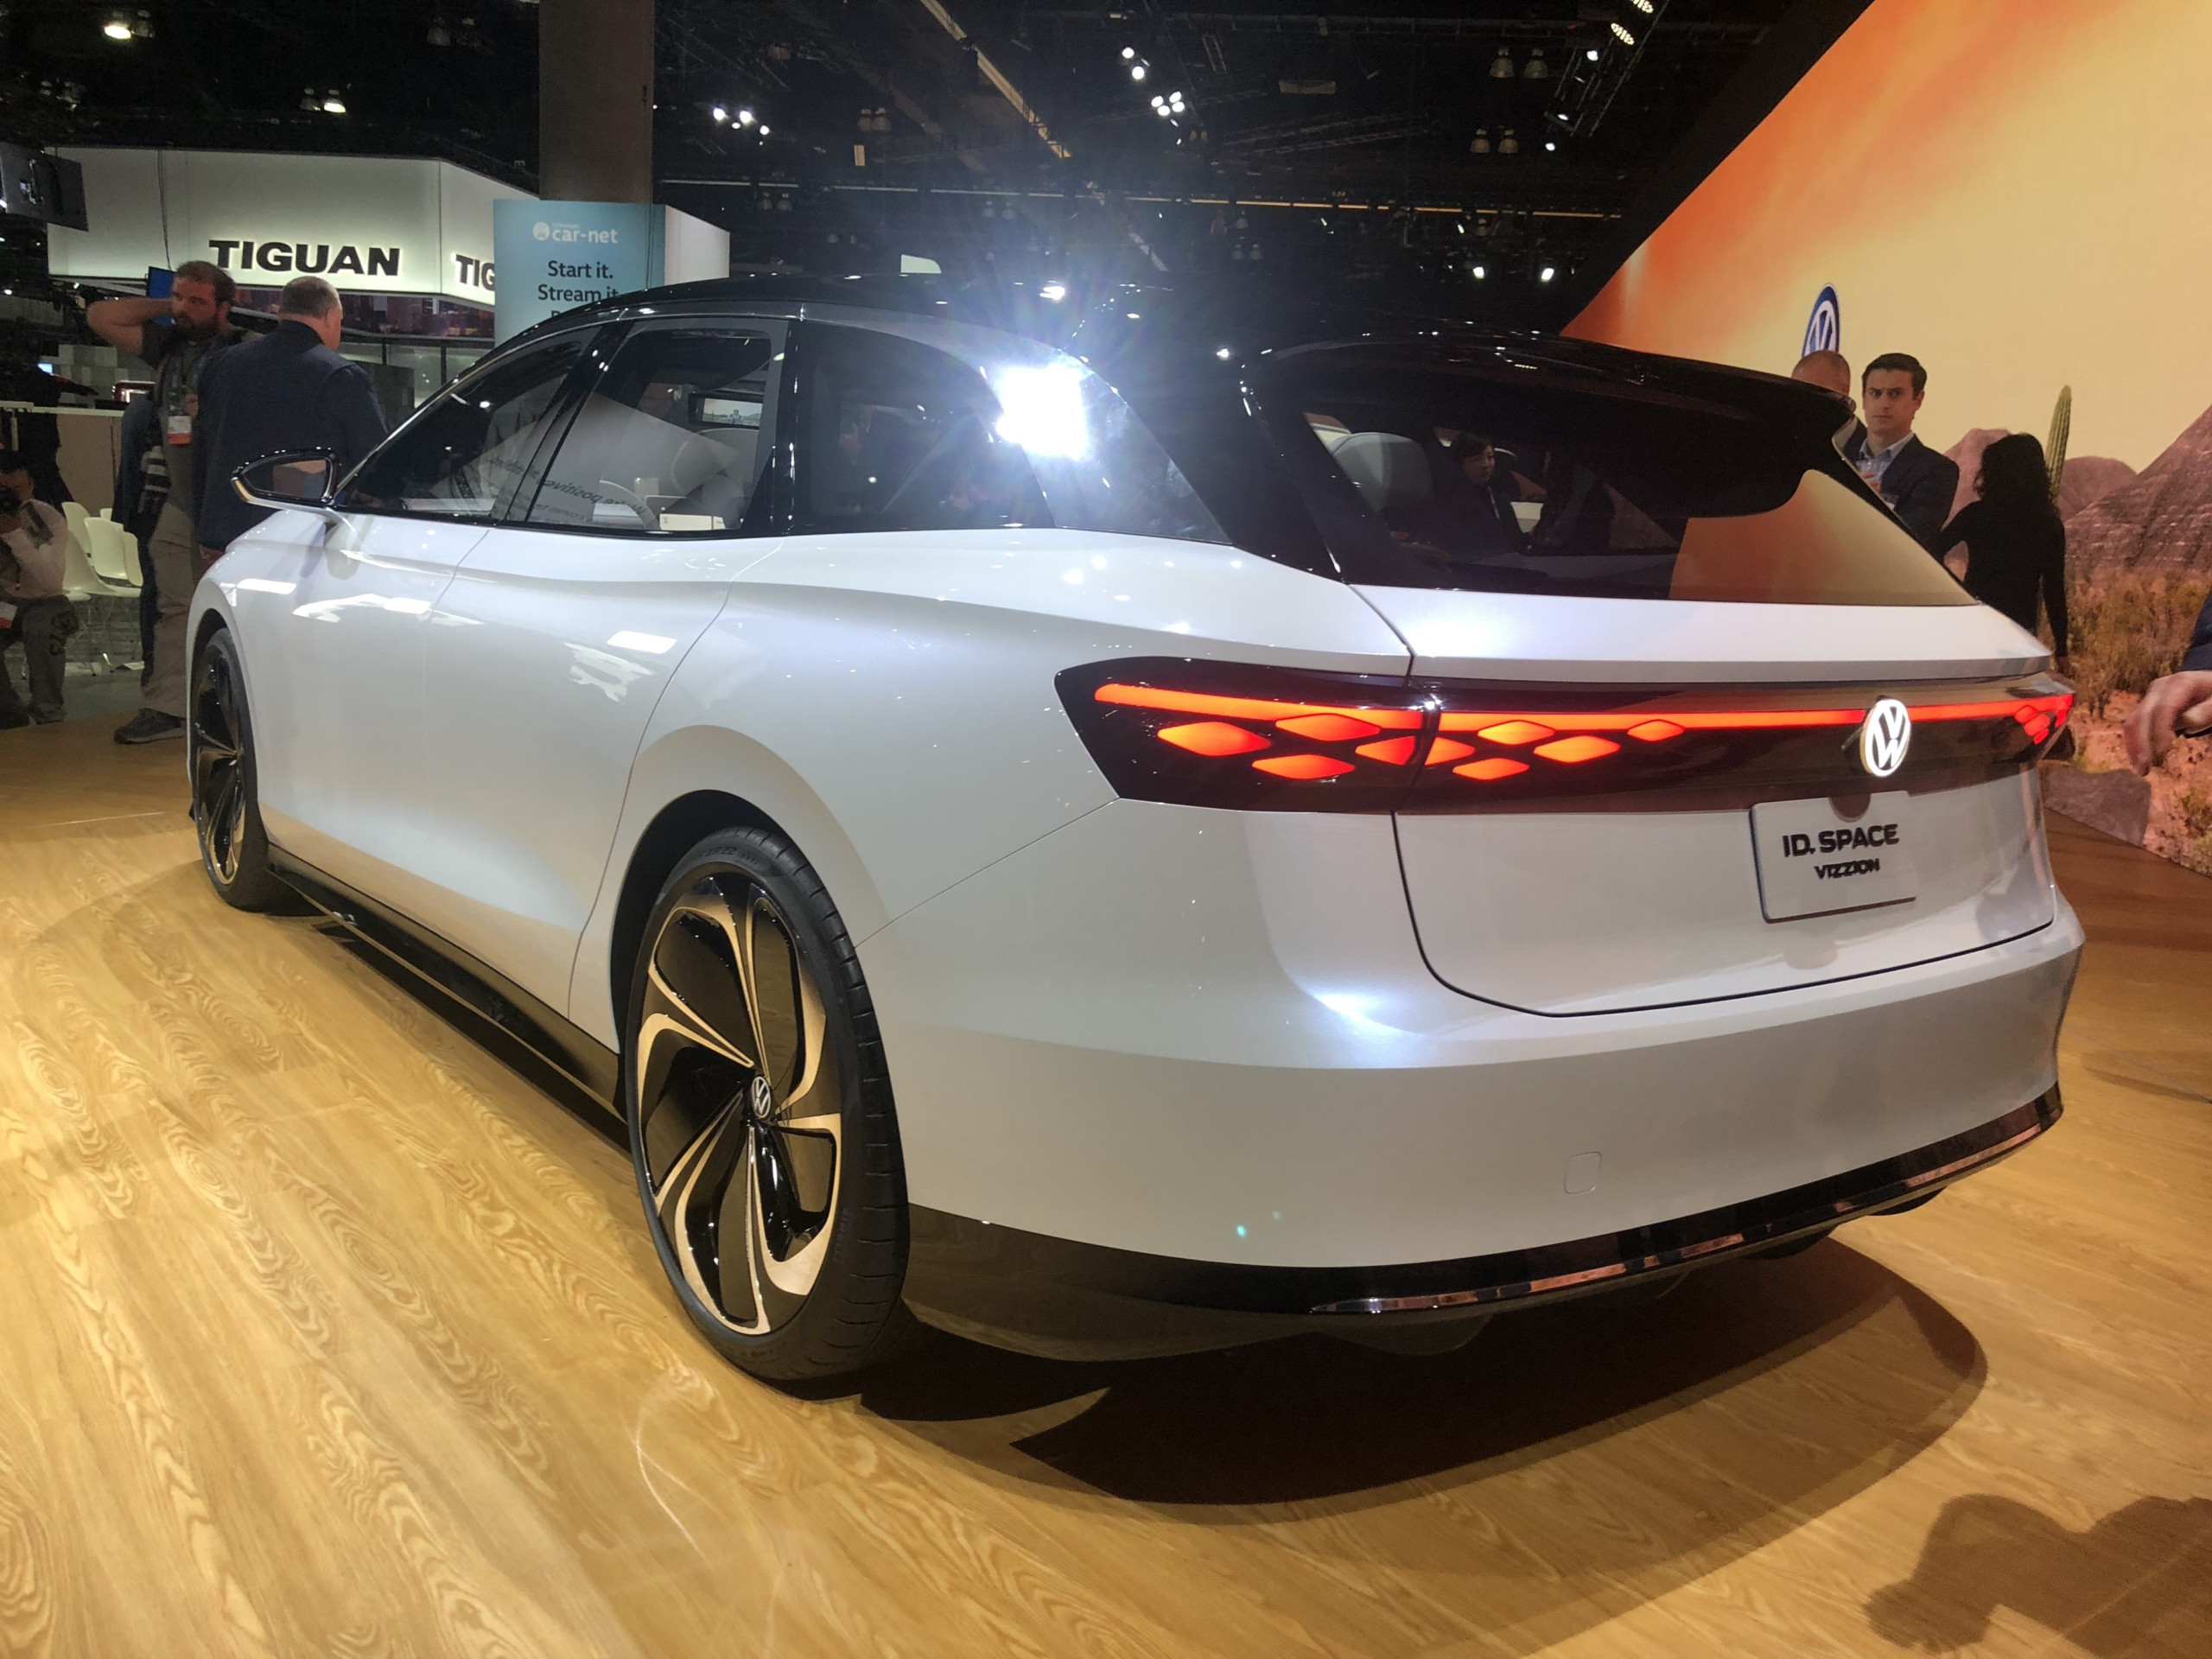 Compared: The New Ev Hotness – Car-Ed - 2022 Volkswagen Tiguan Top Speed Electric Rumor, Color Option